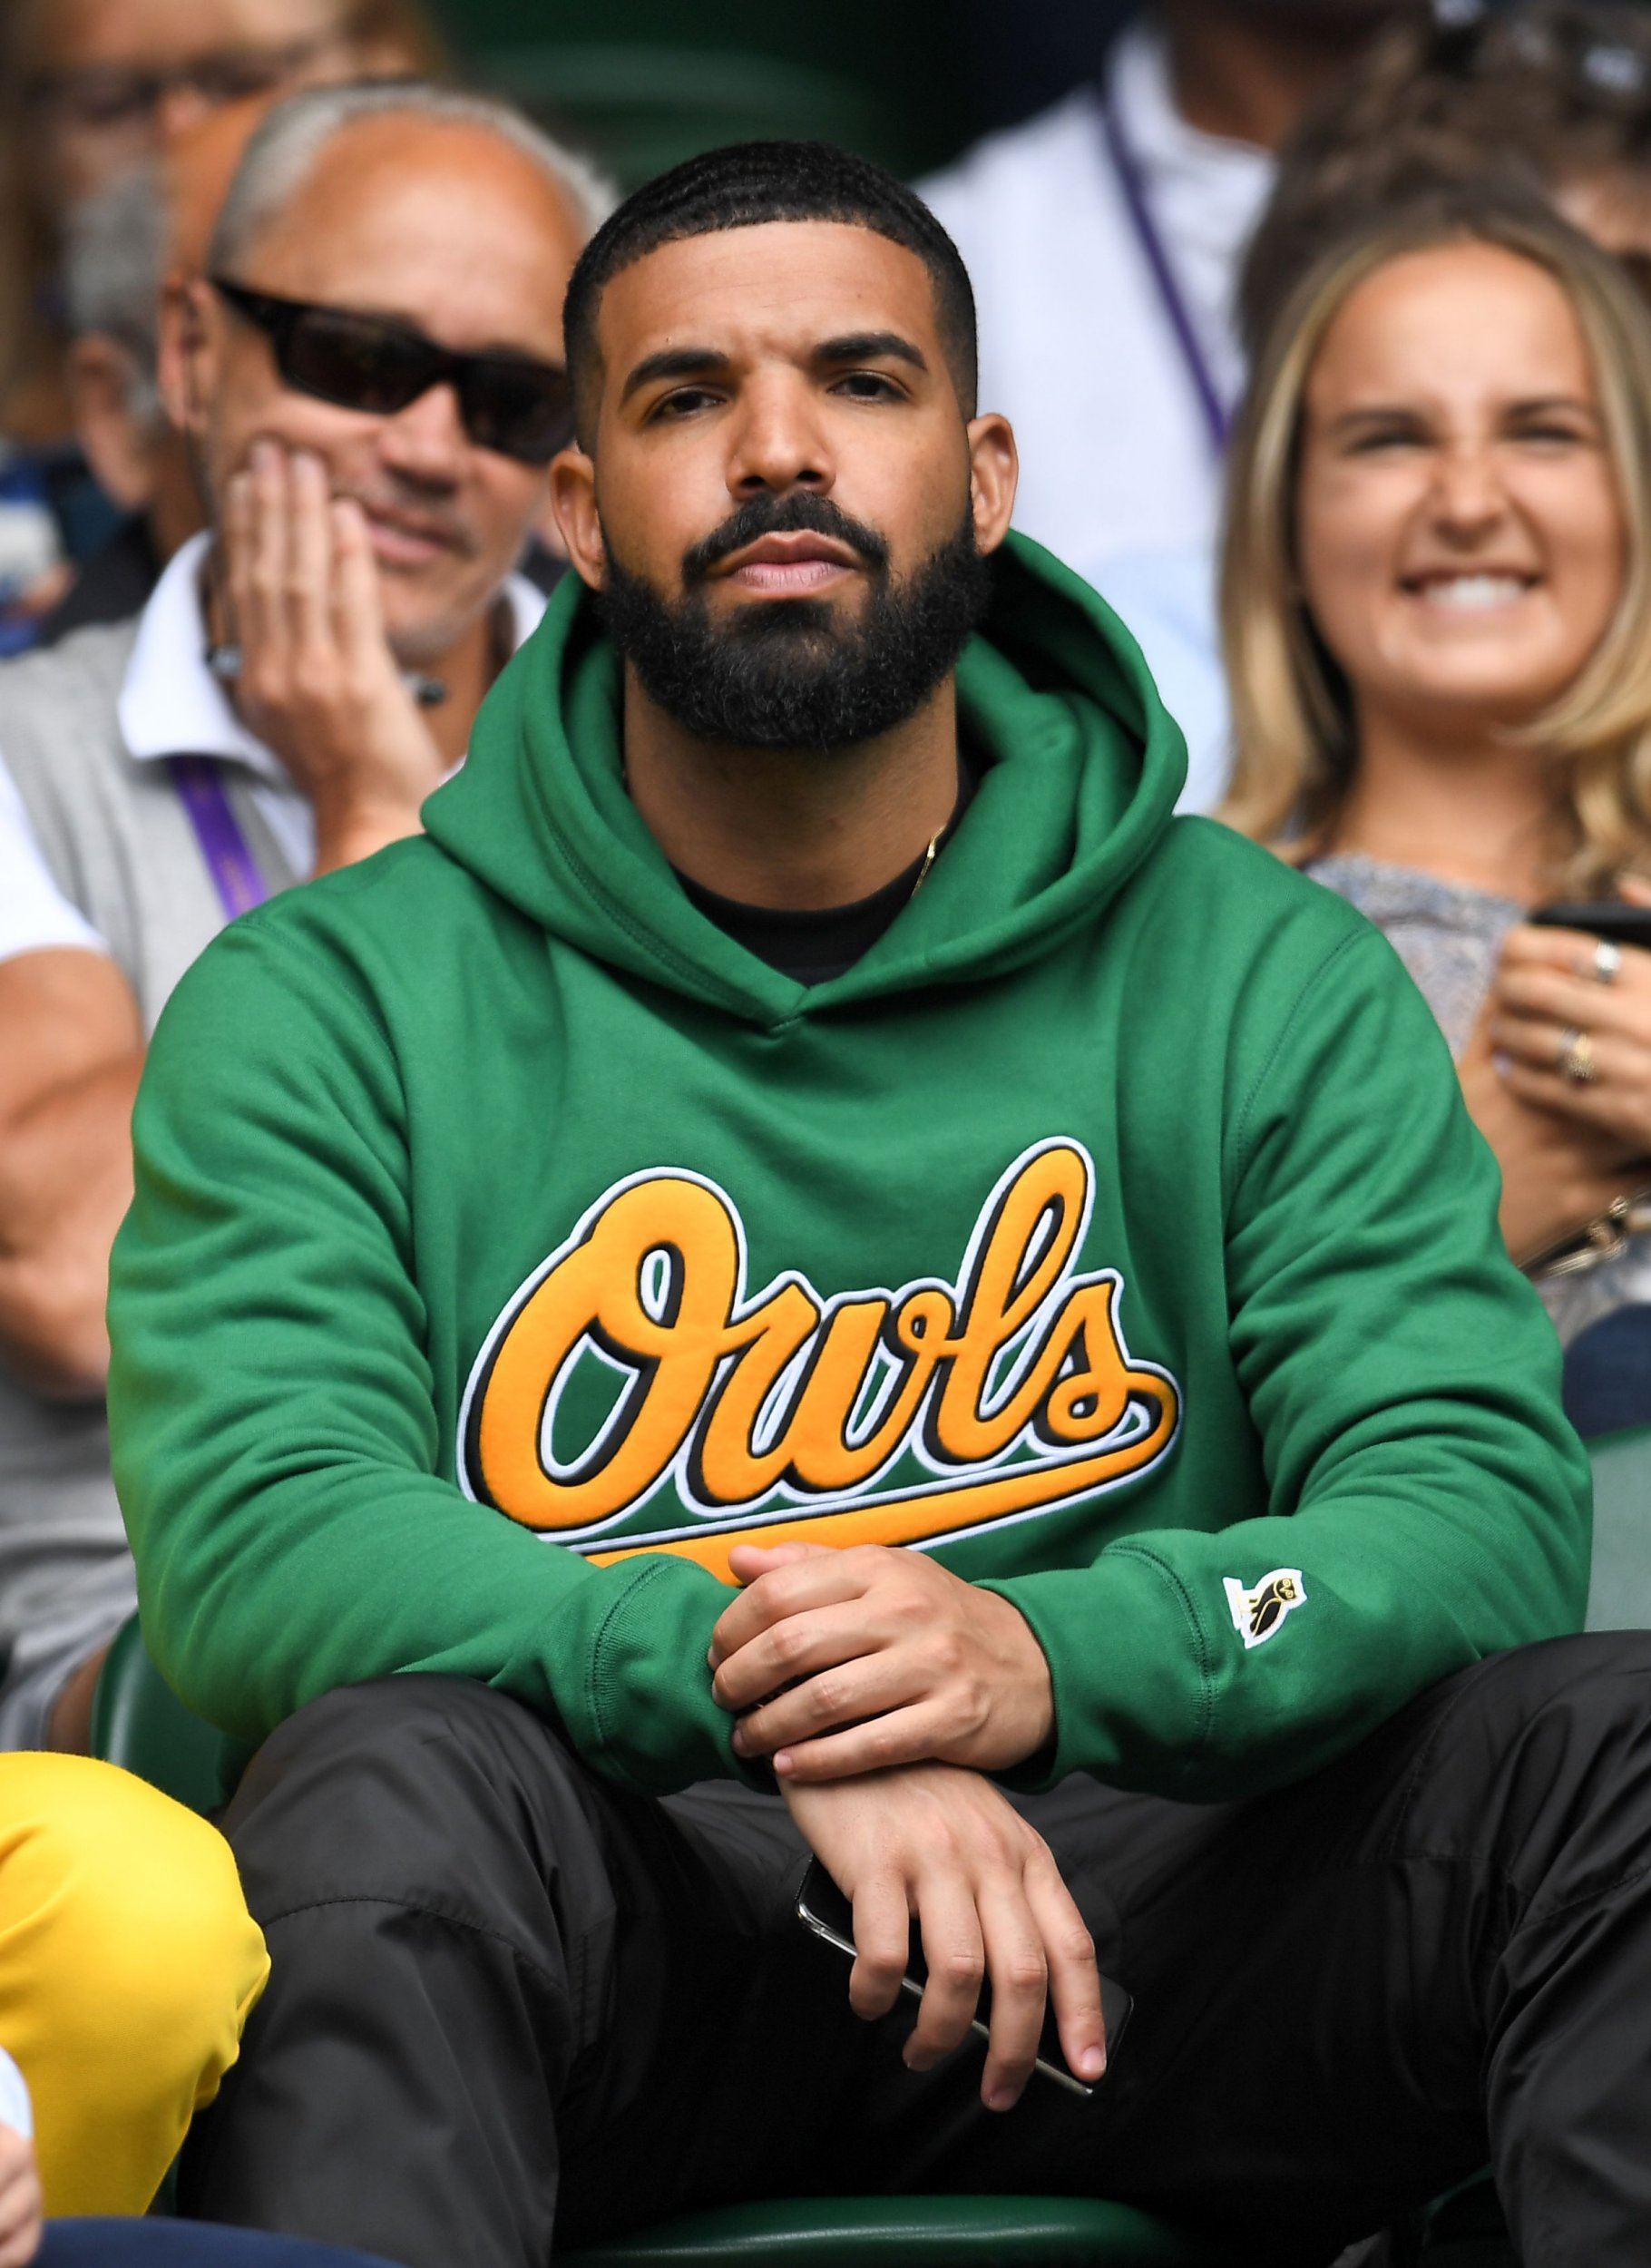 Mandatory Credit: Photo by James Gourley/BPI/REX/Shutterstock (9748019cu) Drake on Centre Court Wimbledon Tennis Championships, Day 8, The All England Lawn Tennis and Croquet Club, London, UK - 10 Jul 2018